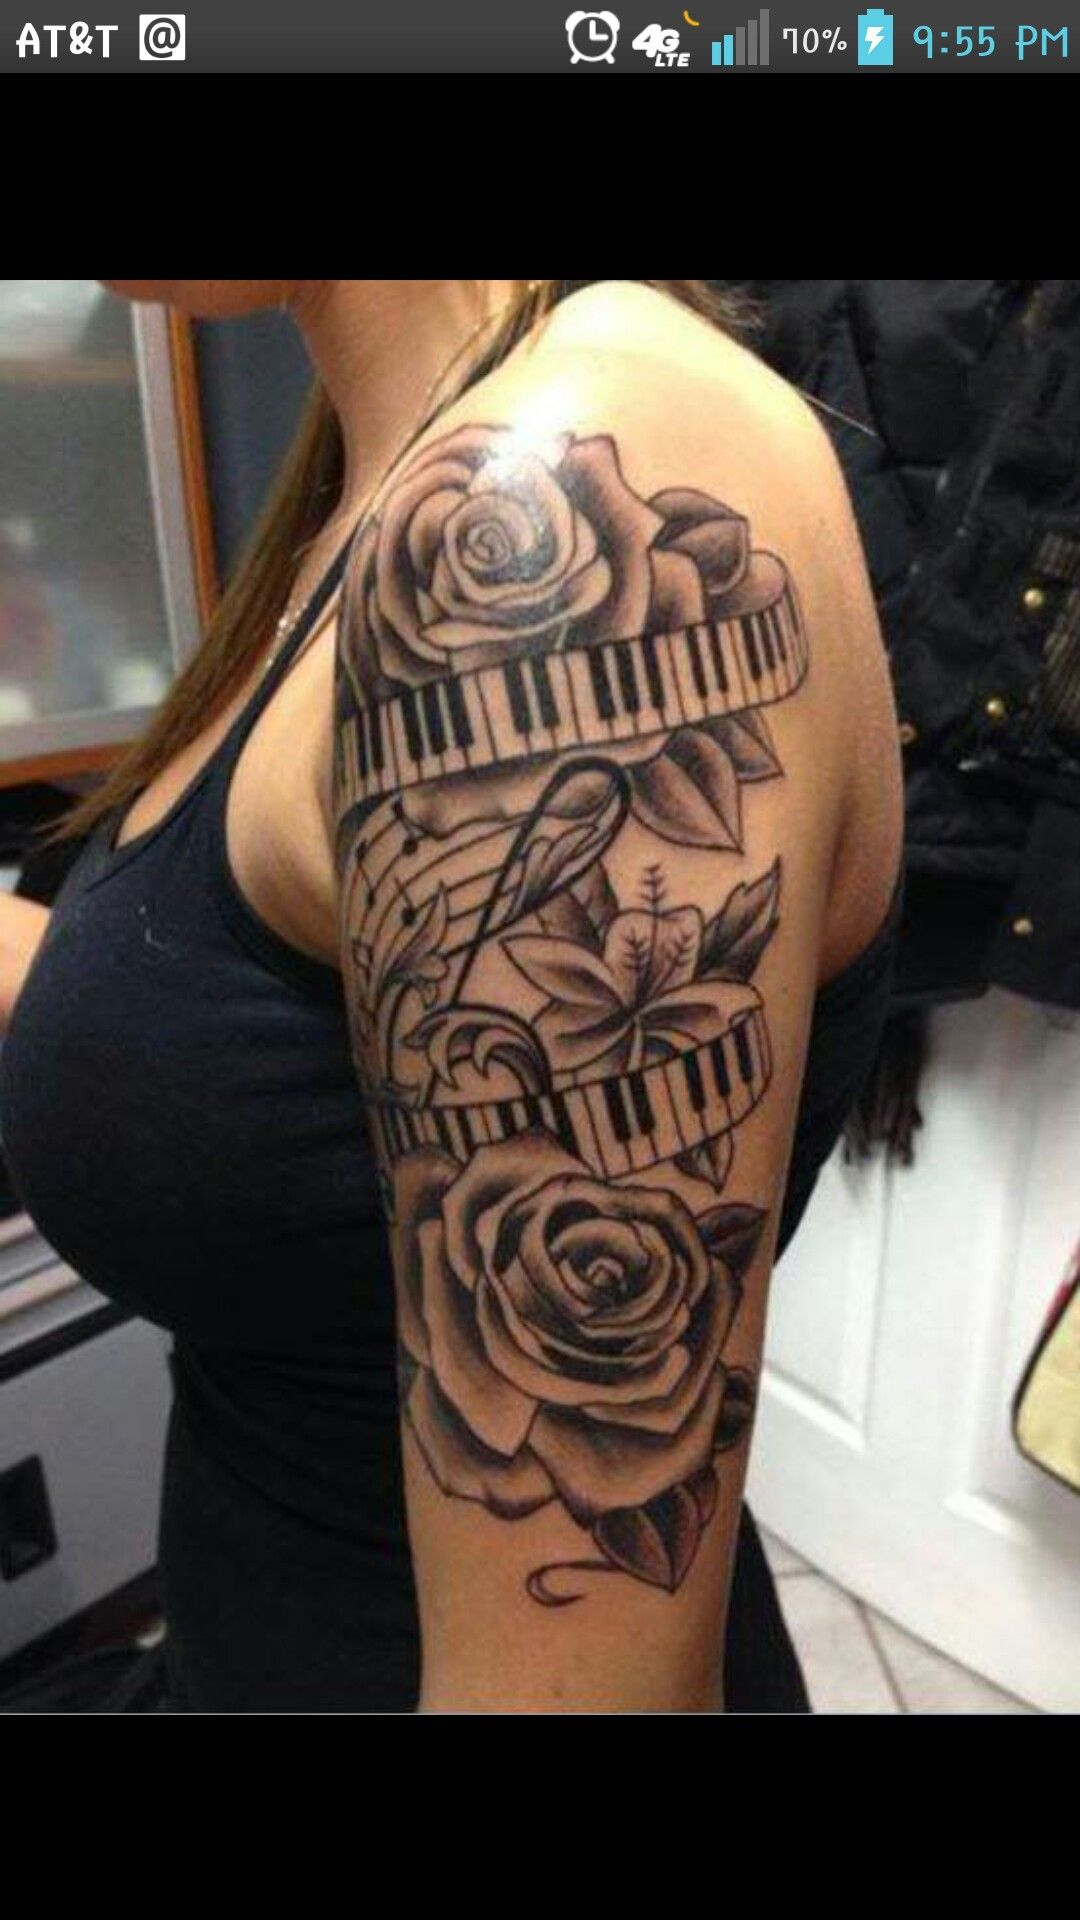 Awesome 1 2 Sleeve Tatt Music Tattoos Music Tattoo Ideas And Designs